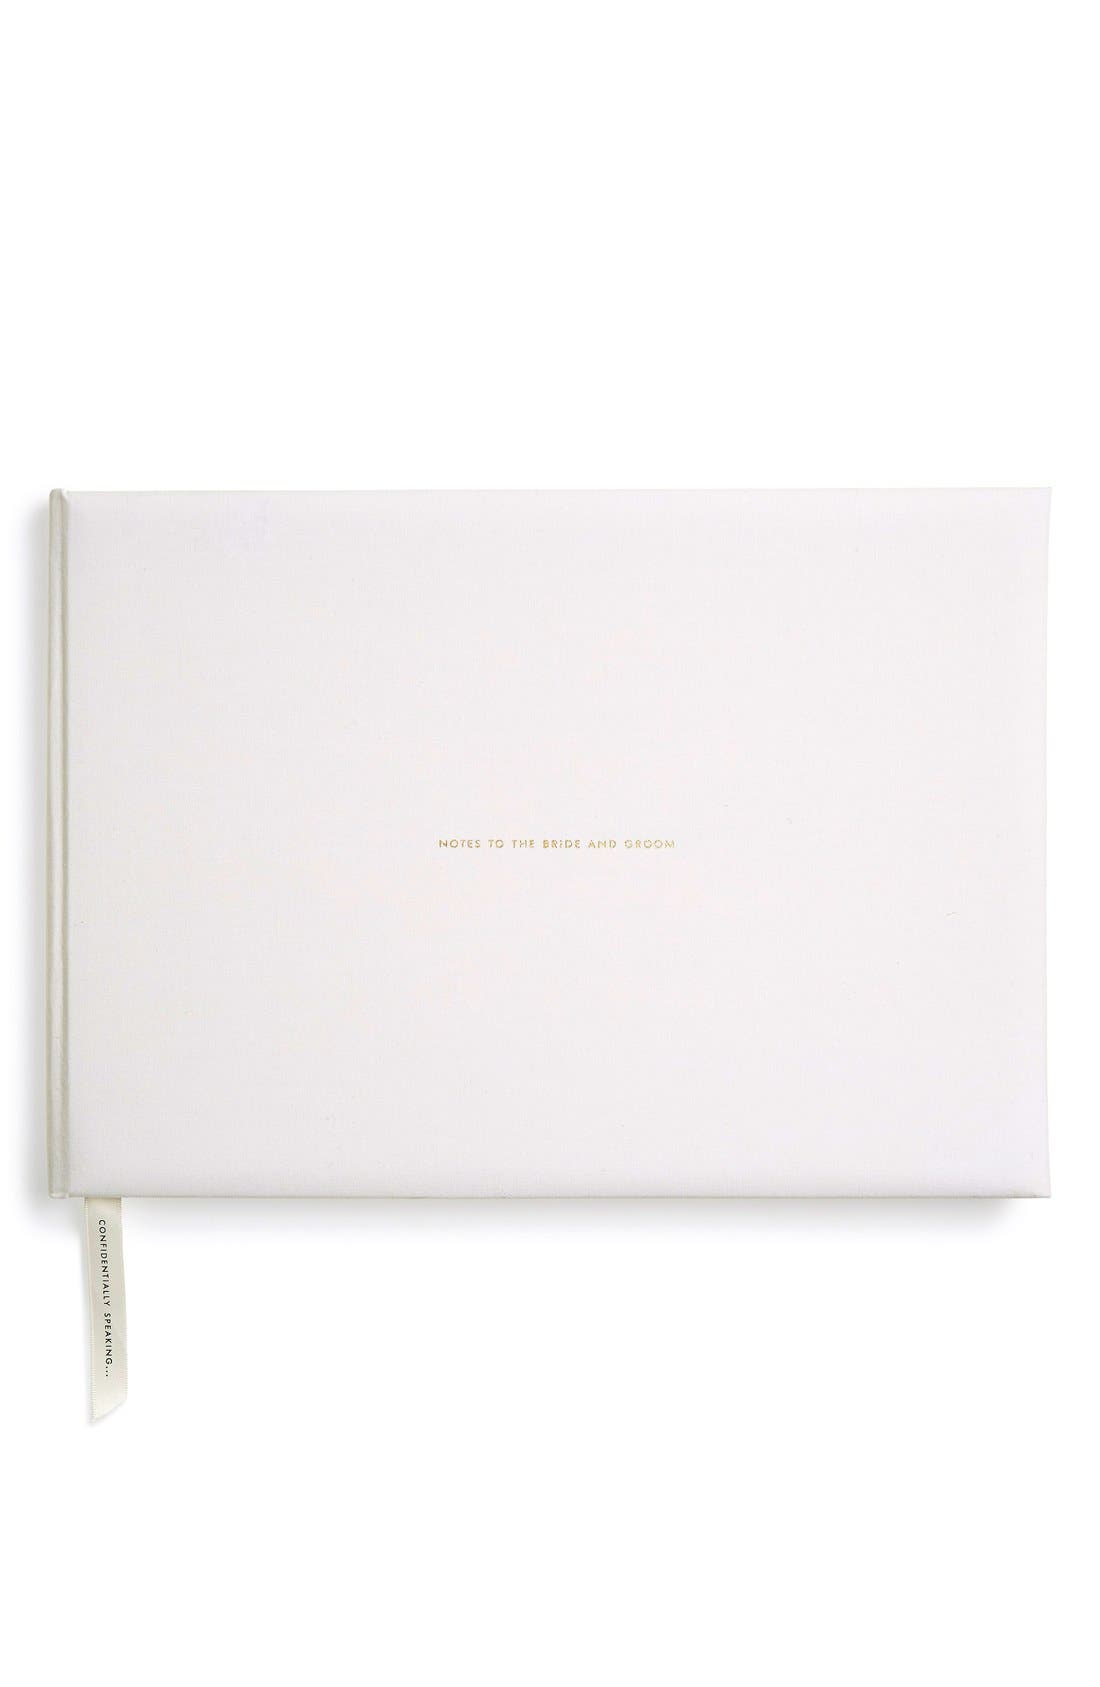 KATE SPADE NEW YORK,                             'notes to the bride & groom' guest book,                             Alternate thumbnail 3, color,                             100